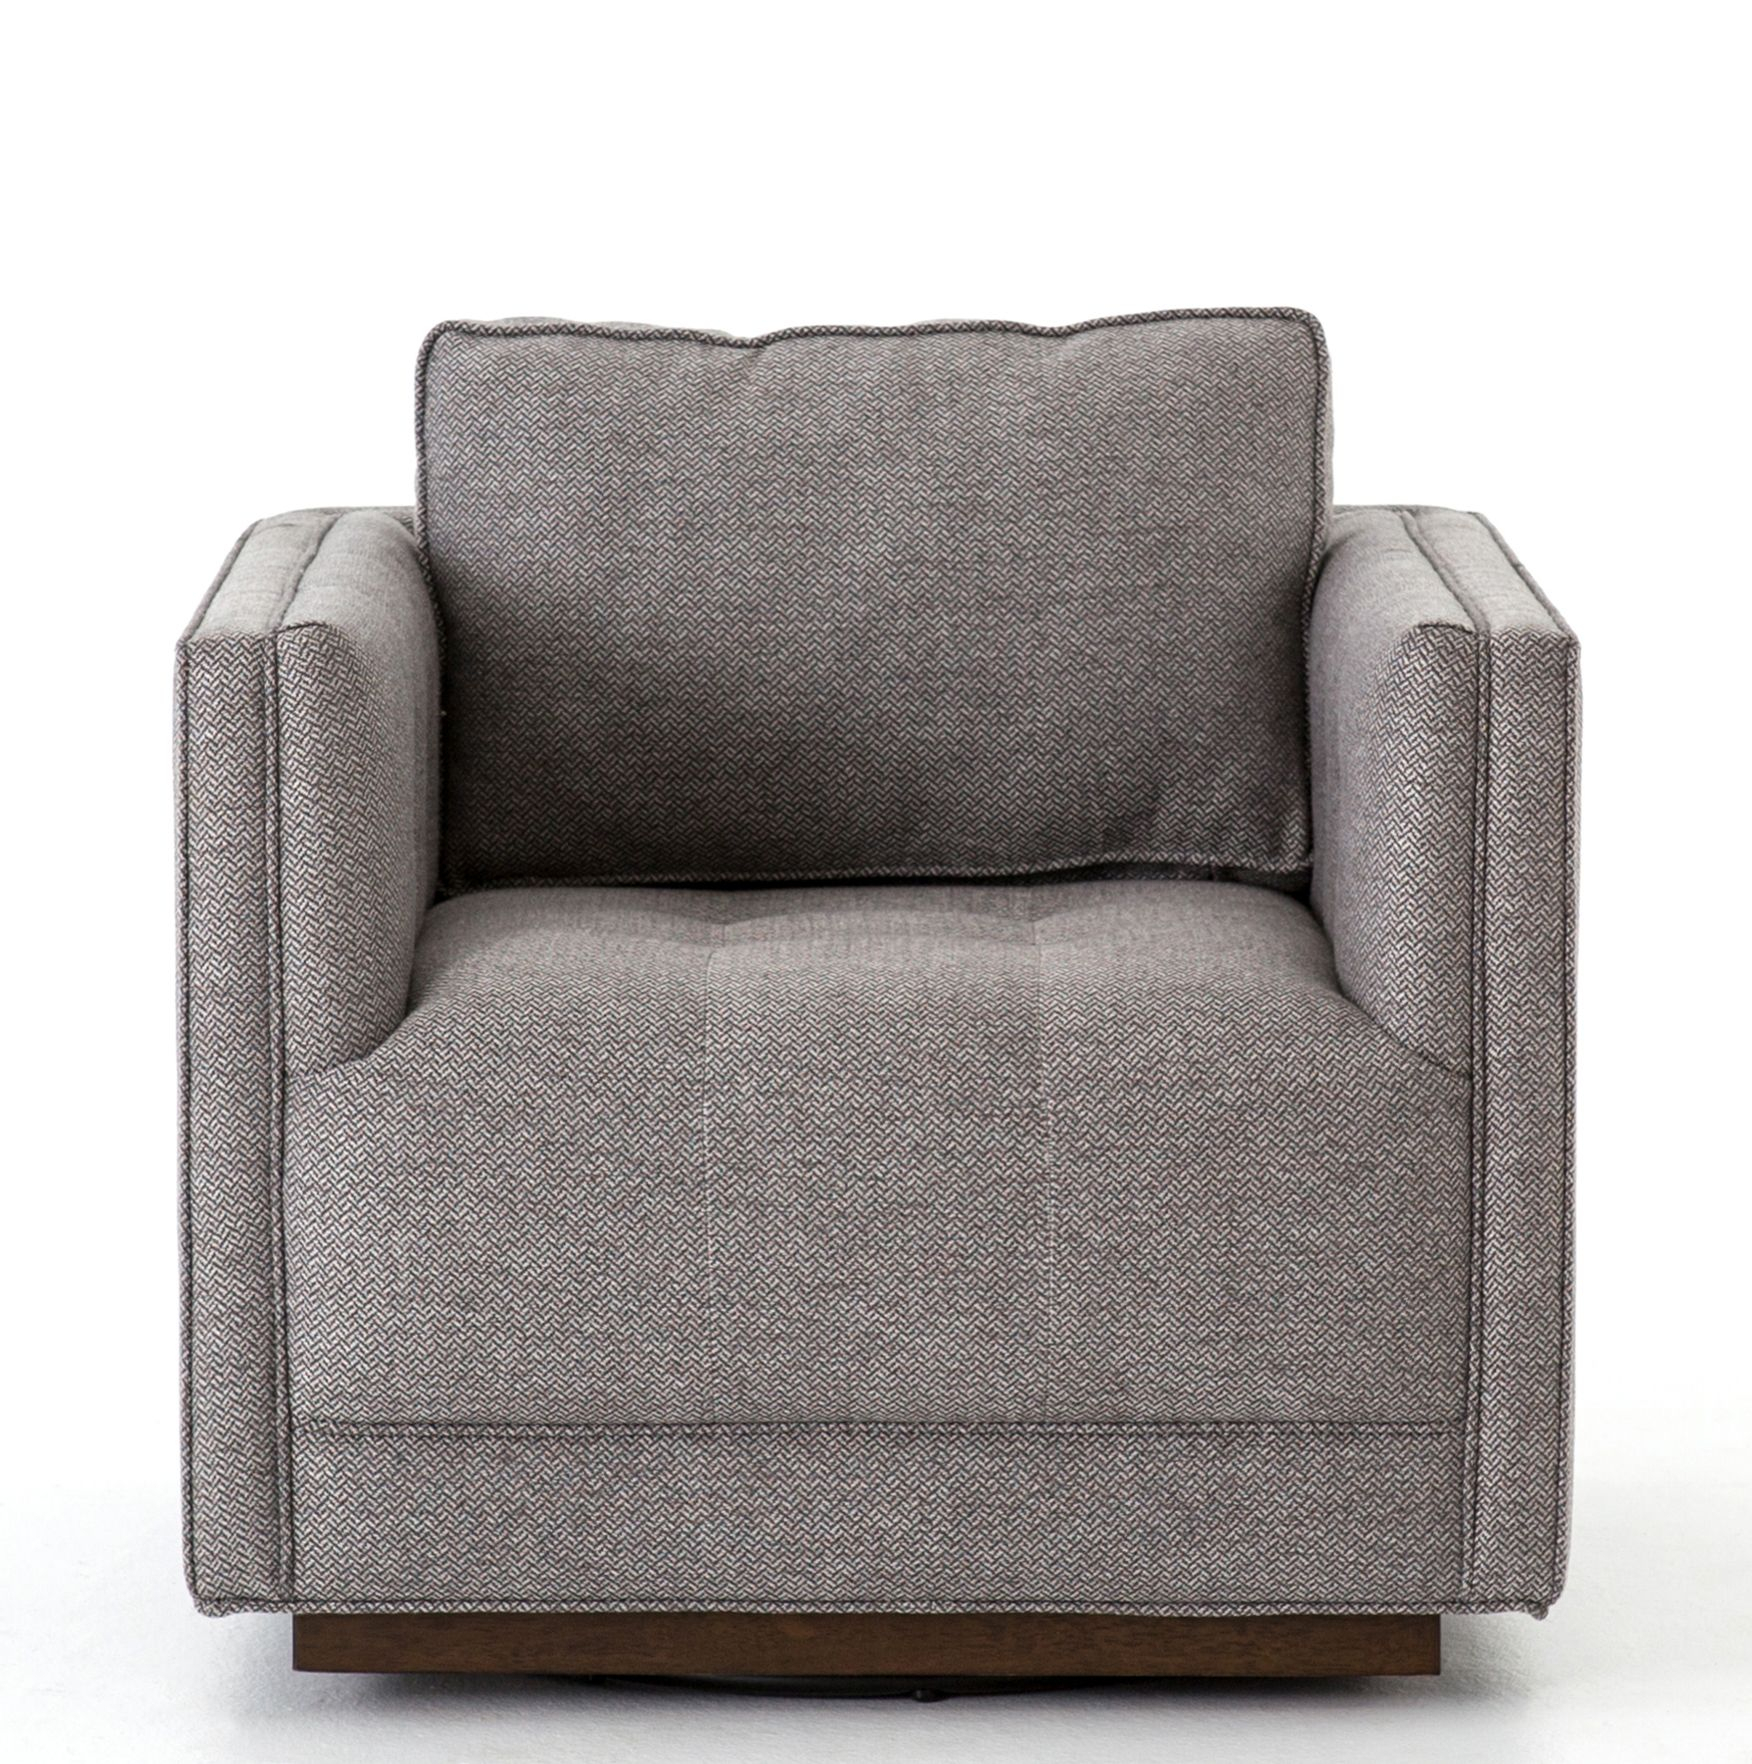 Constance Swivel Chair, Greystone In 2018 | New House – Interior Pertaining To Aidan Ii Swivel Accent Chairs (View 19 of 25)